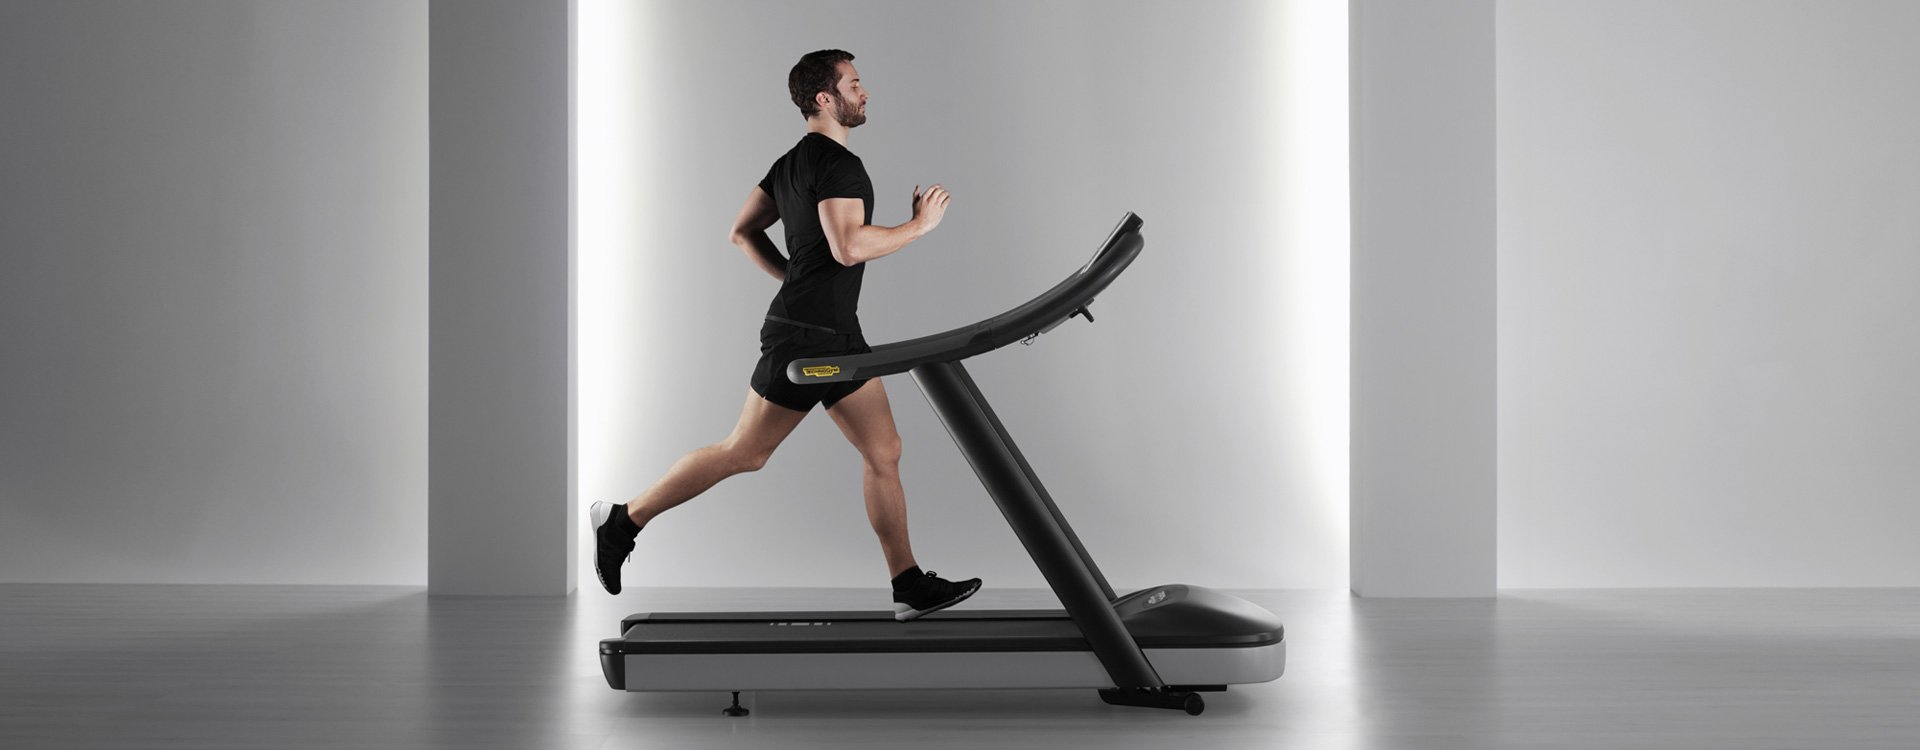 Forma - Cardio - Products